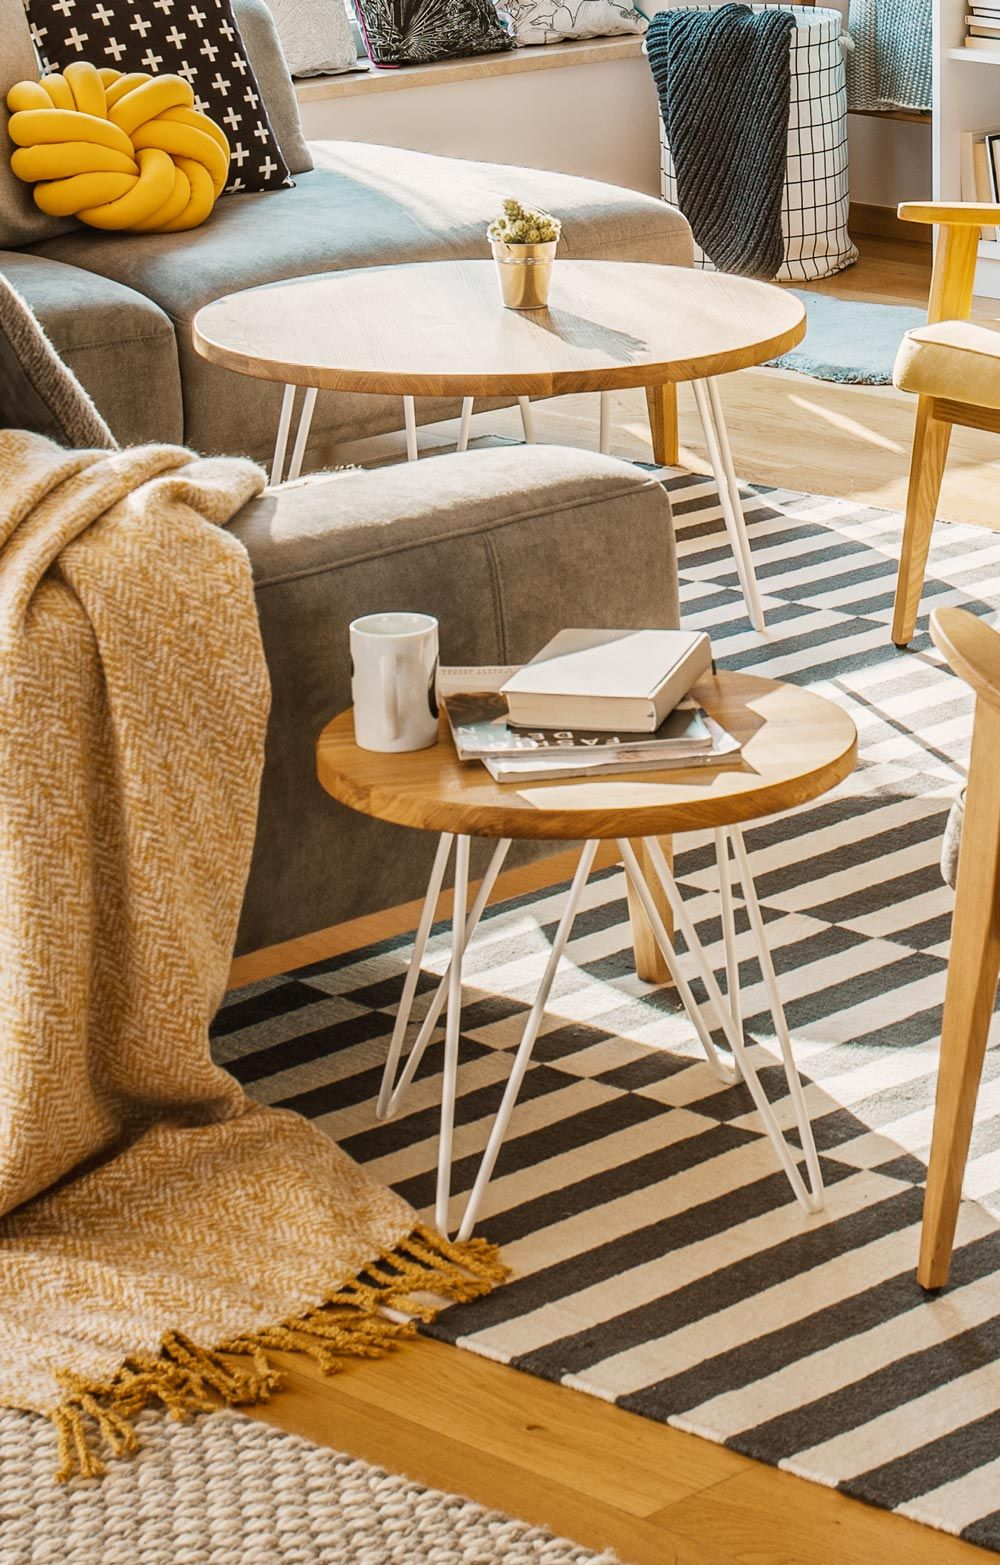 Beautiful Eclectic Decor Black And White Striped Carpet Modern Design Furniture Wooden Side Tabl Furniture Design Modern Eclectic Living Room Eclectic Decor